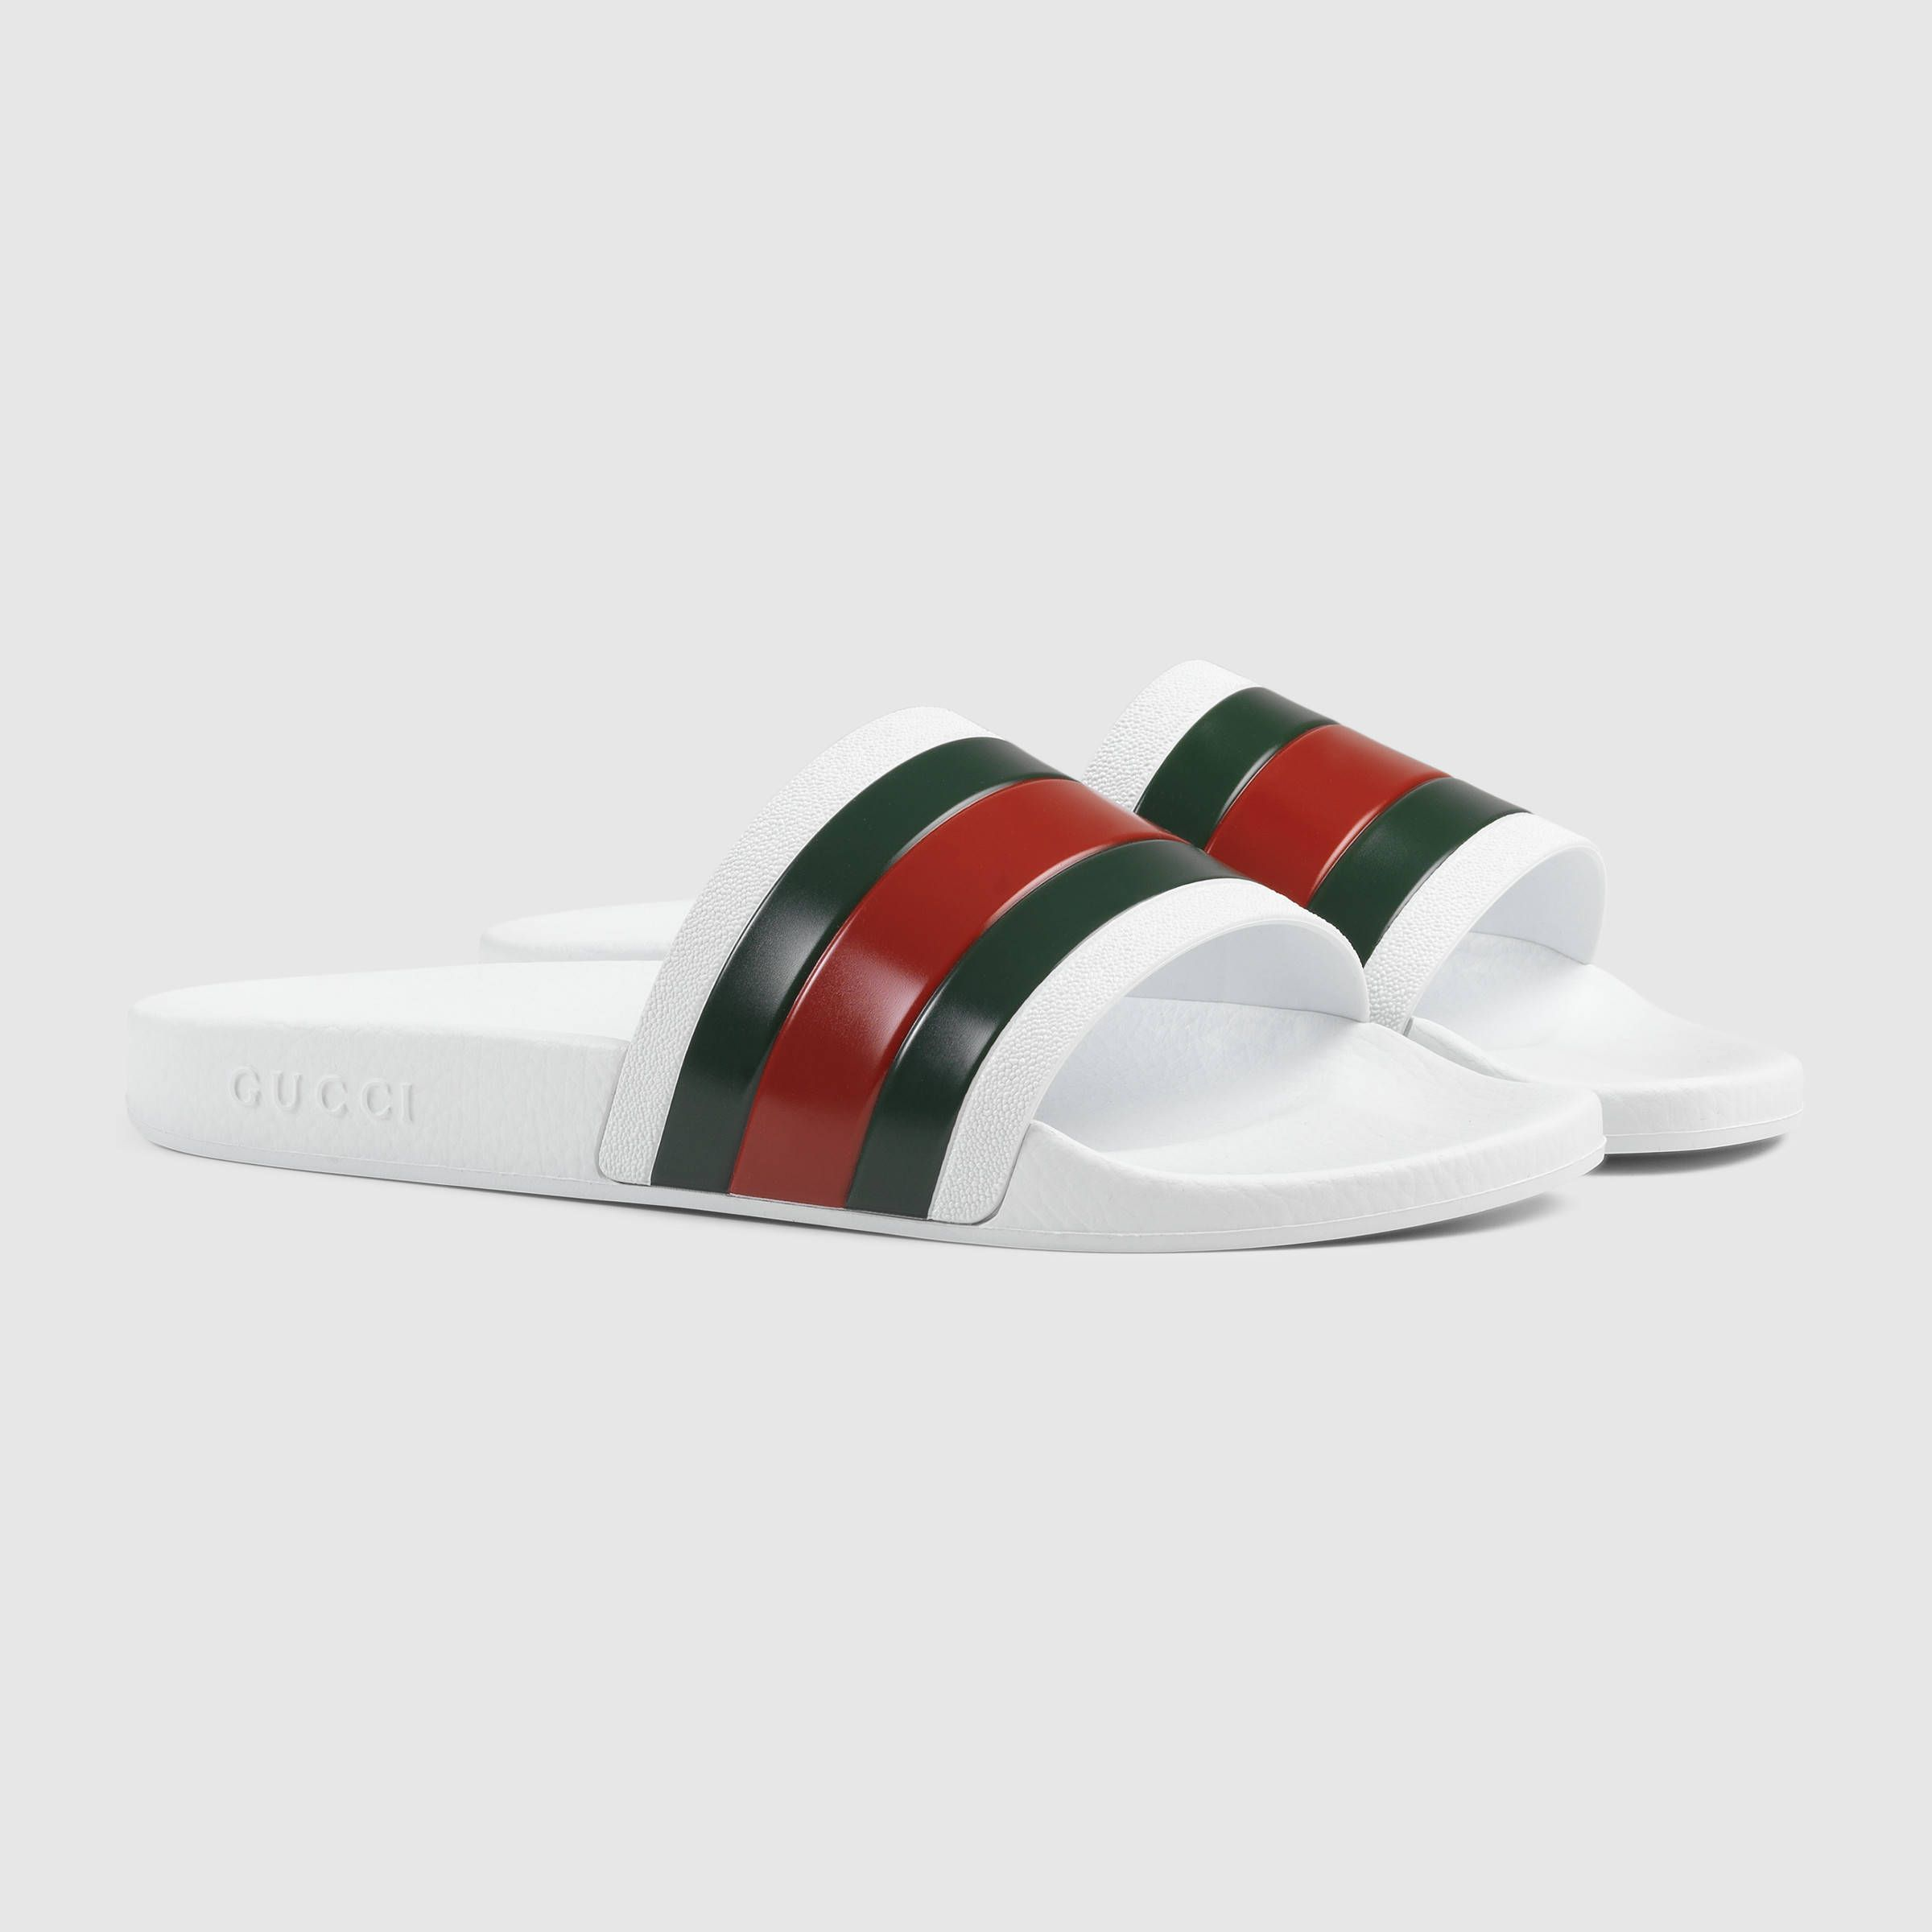 e7e83cd7e0fd03 Gucci Men - Rubber slide sandal -  160